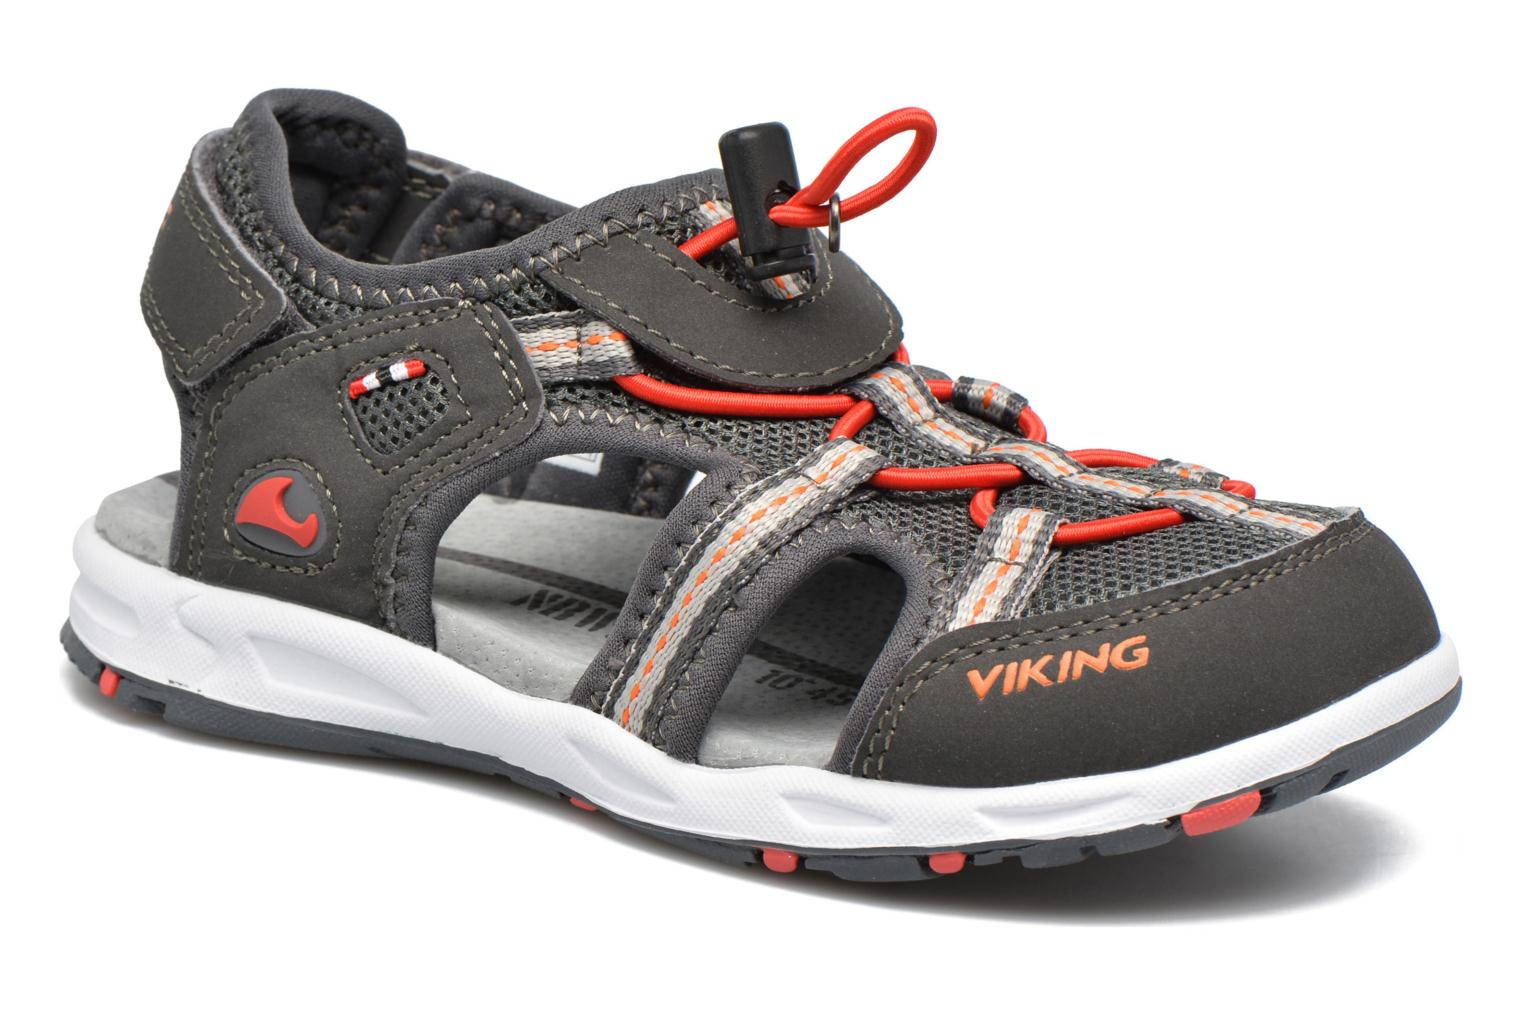 Viking Sandales Thrill Enfant Charcoal/Red 2cc3KN